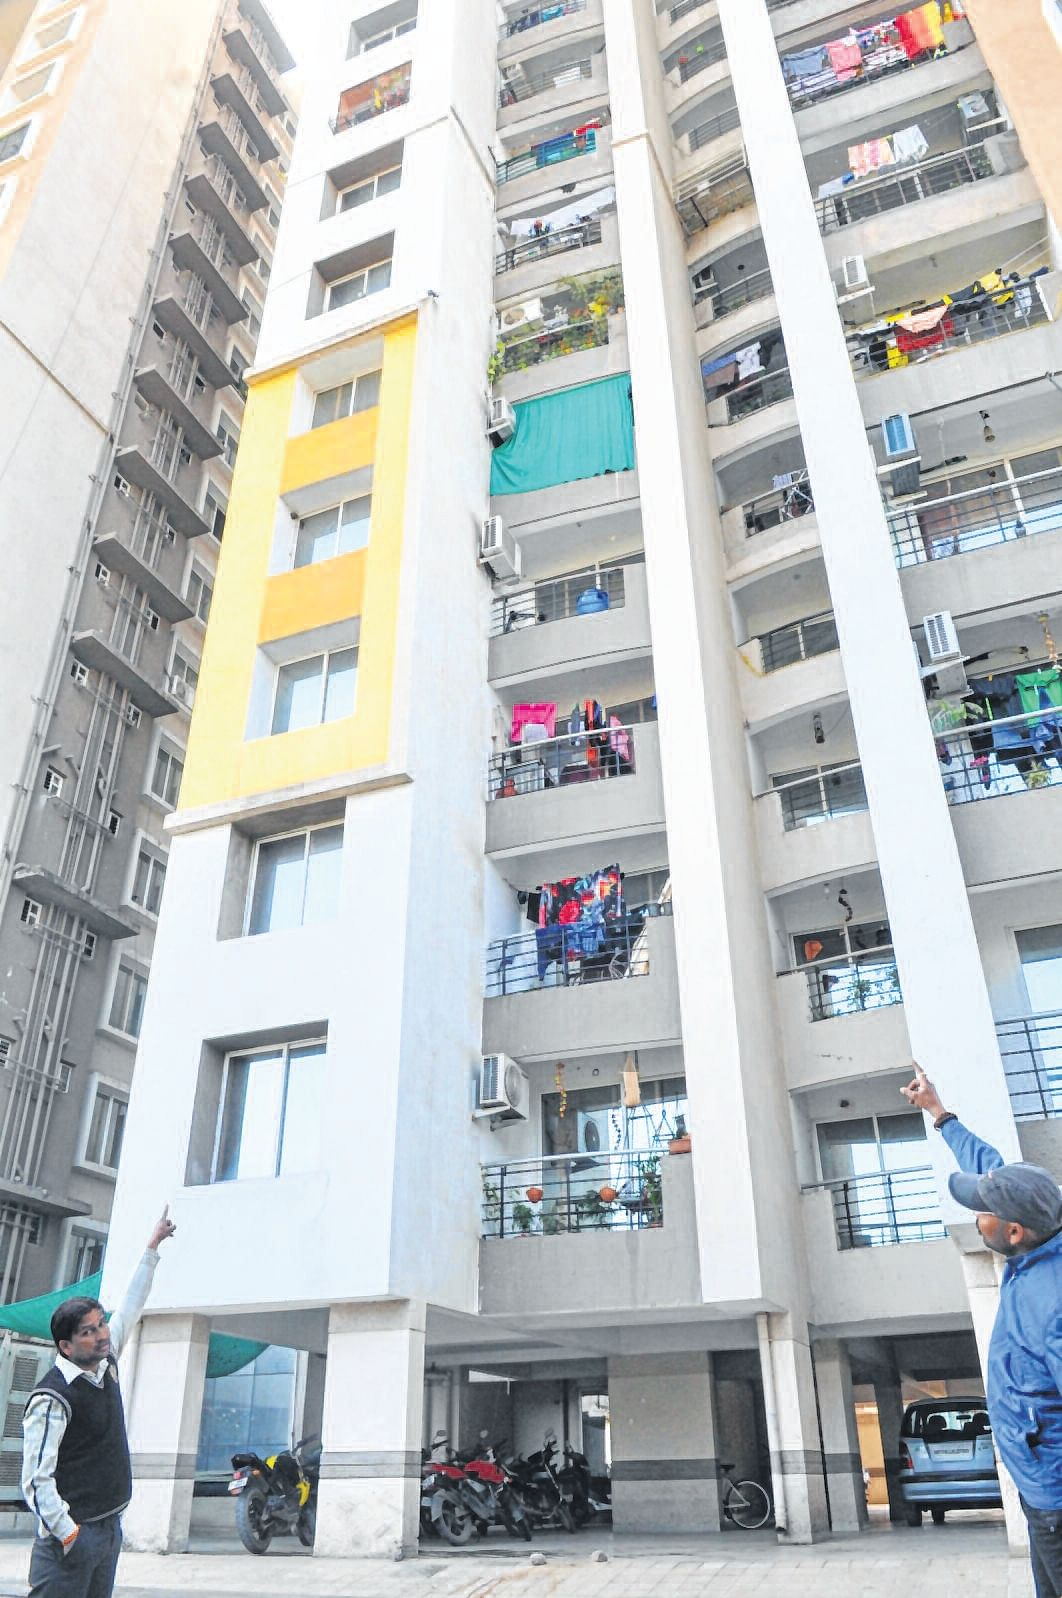 Indore: Depressed woman falls to death from 5th floor of multistorey apartment